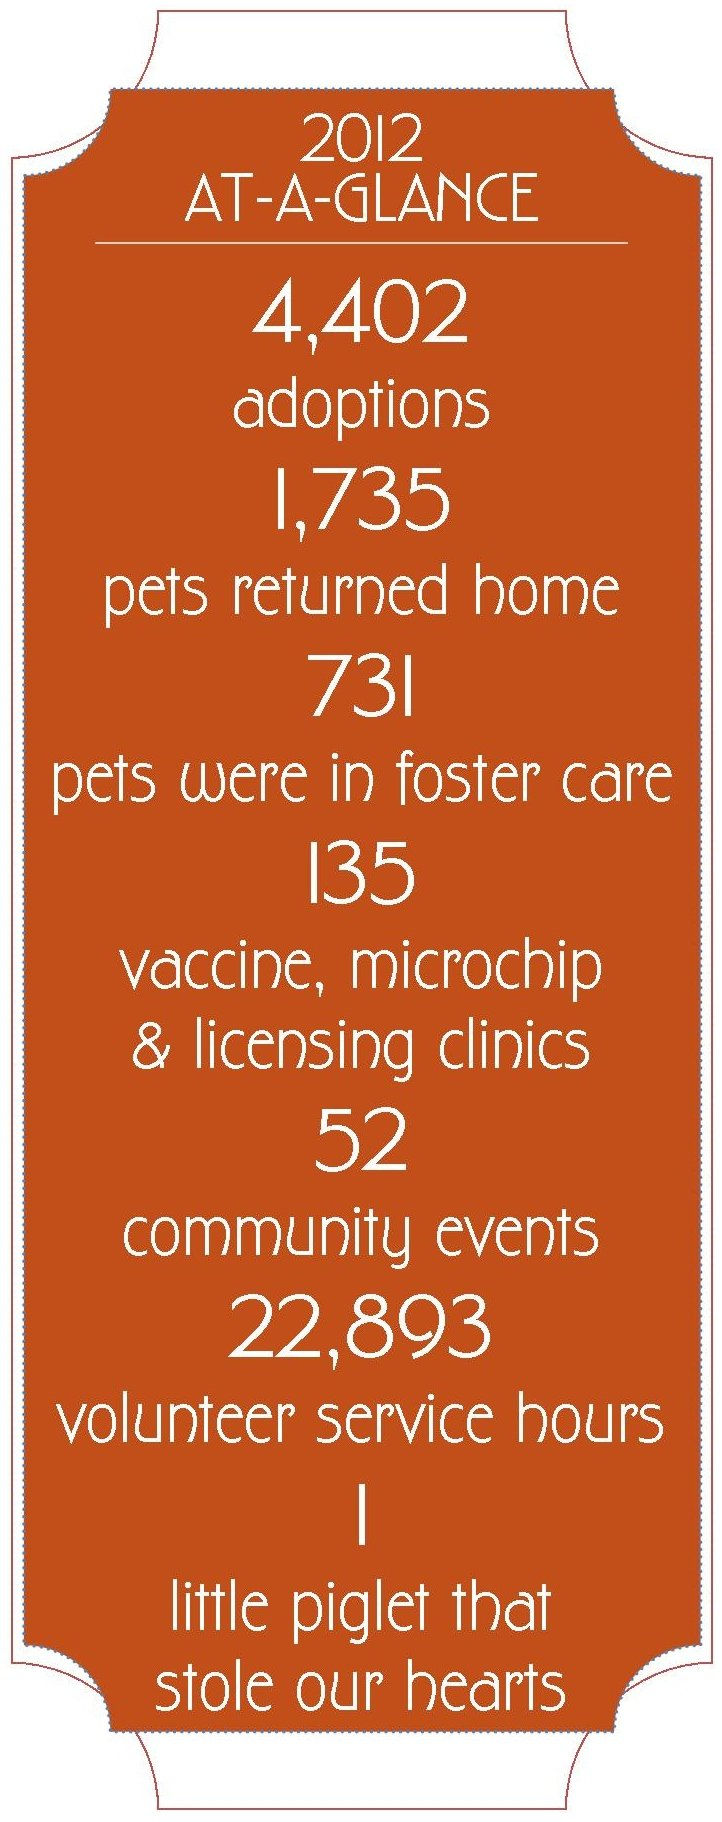 Foothills Animal Shelter 2012 At-a-Glance